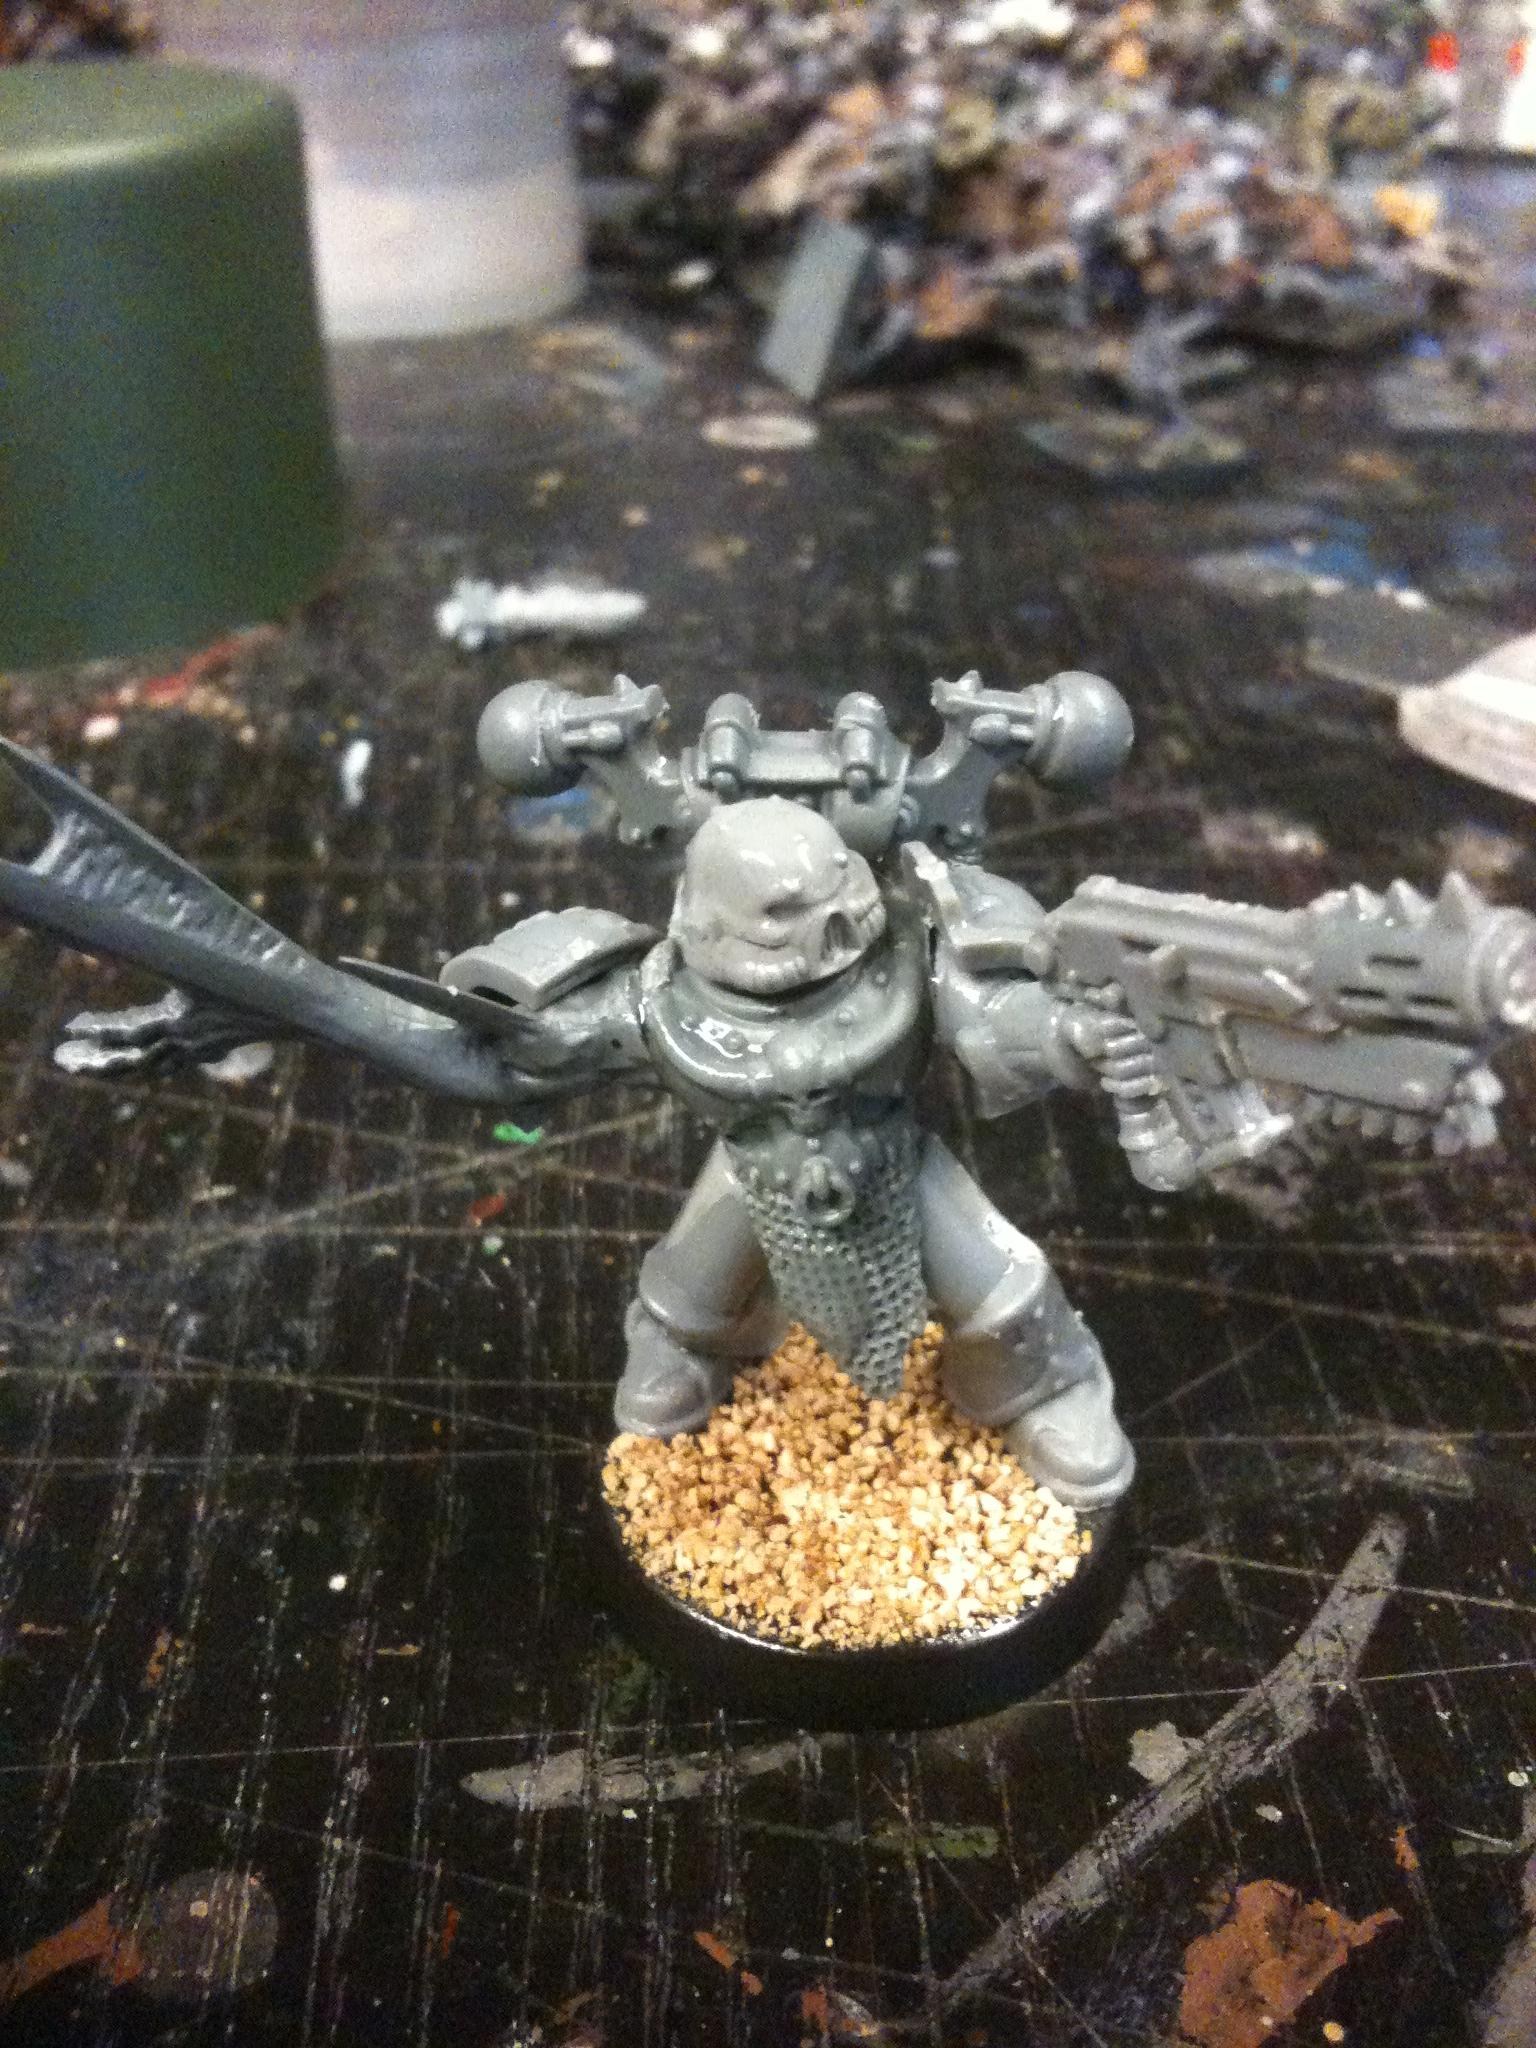 Second dude coming up... I couldnät make it Nurglish because of my limited equipment I'm able to carry to my local FLGS